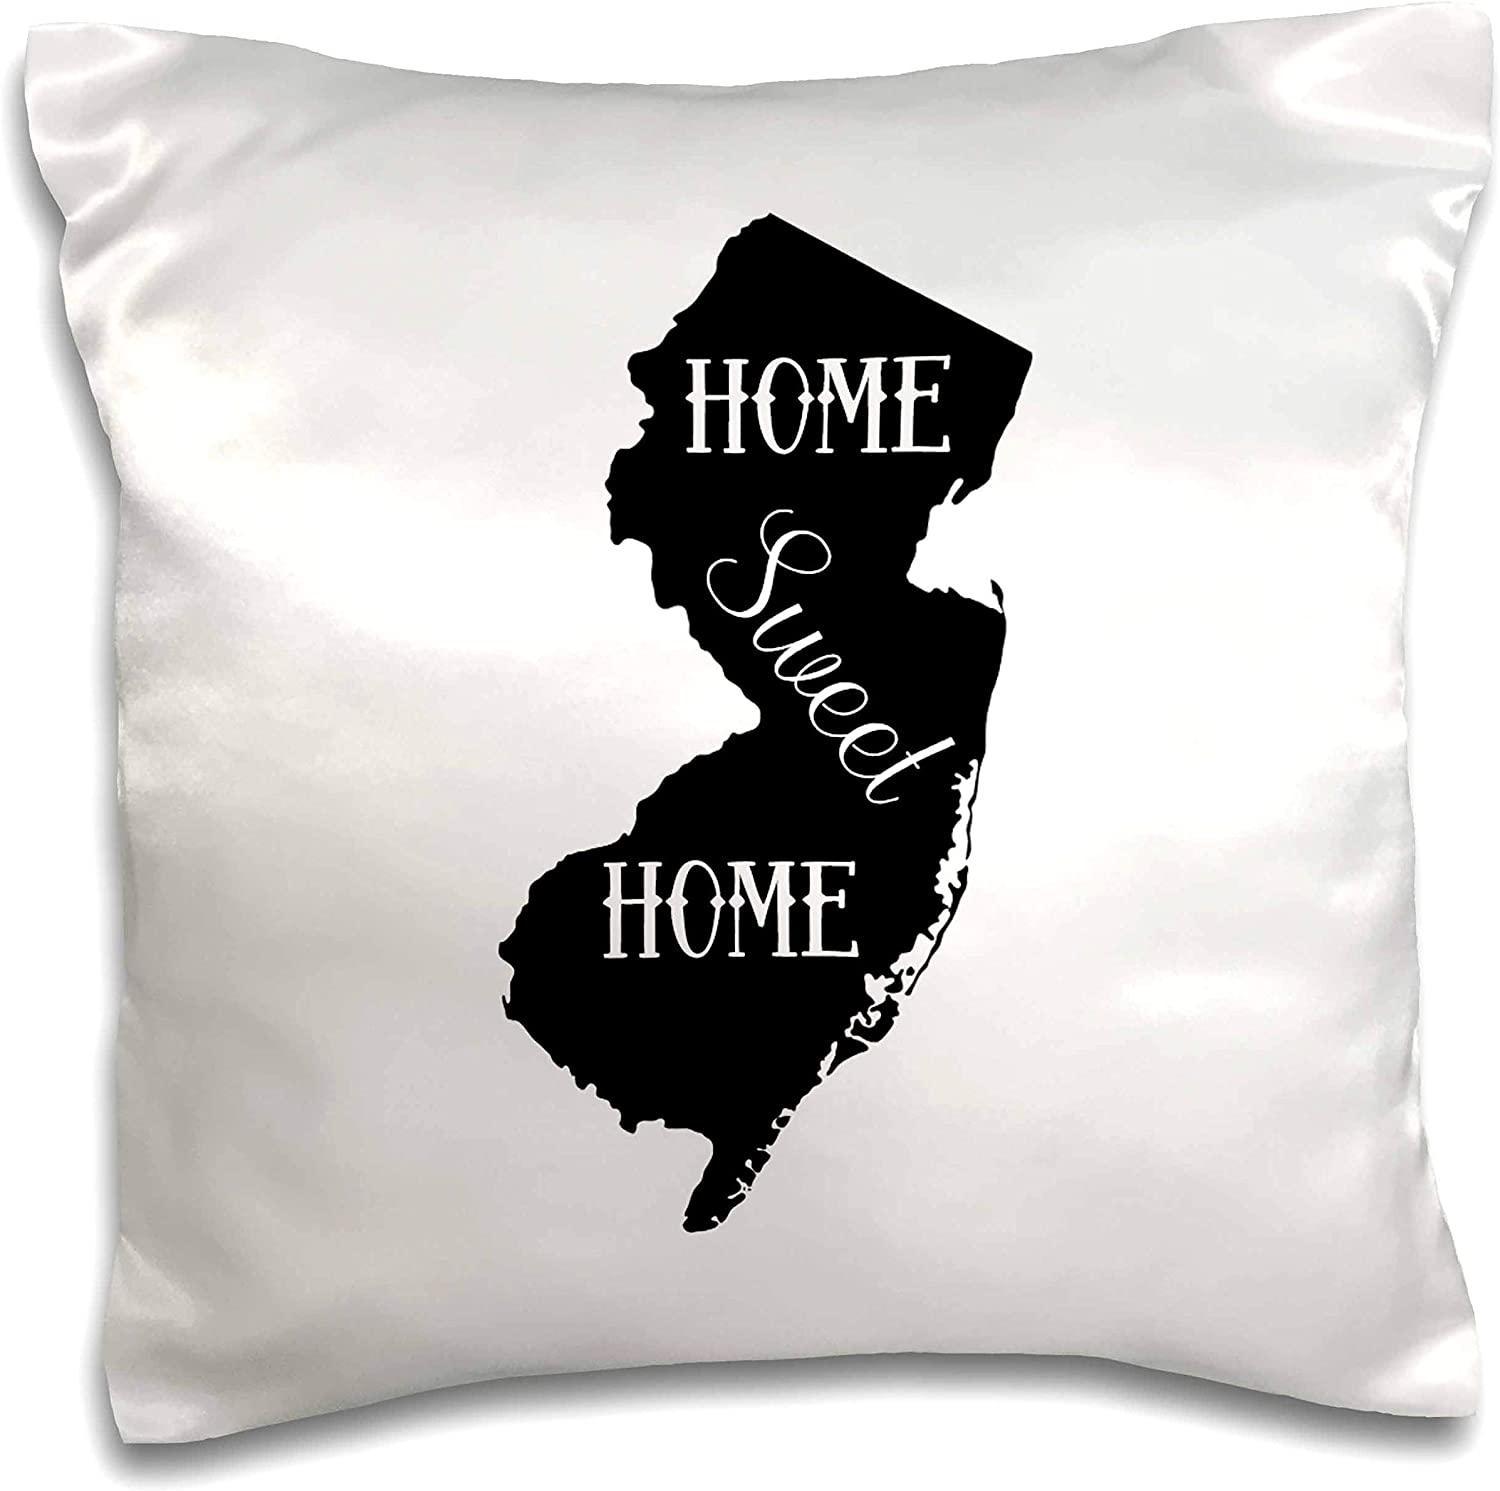 3dRose Stamp City - typography - Home Sweet Home inside the state of New Jersey. White background. - 16x16 inch Pillow Case (pc_324155_1)